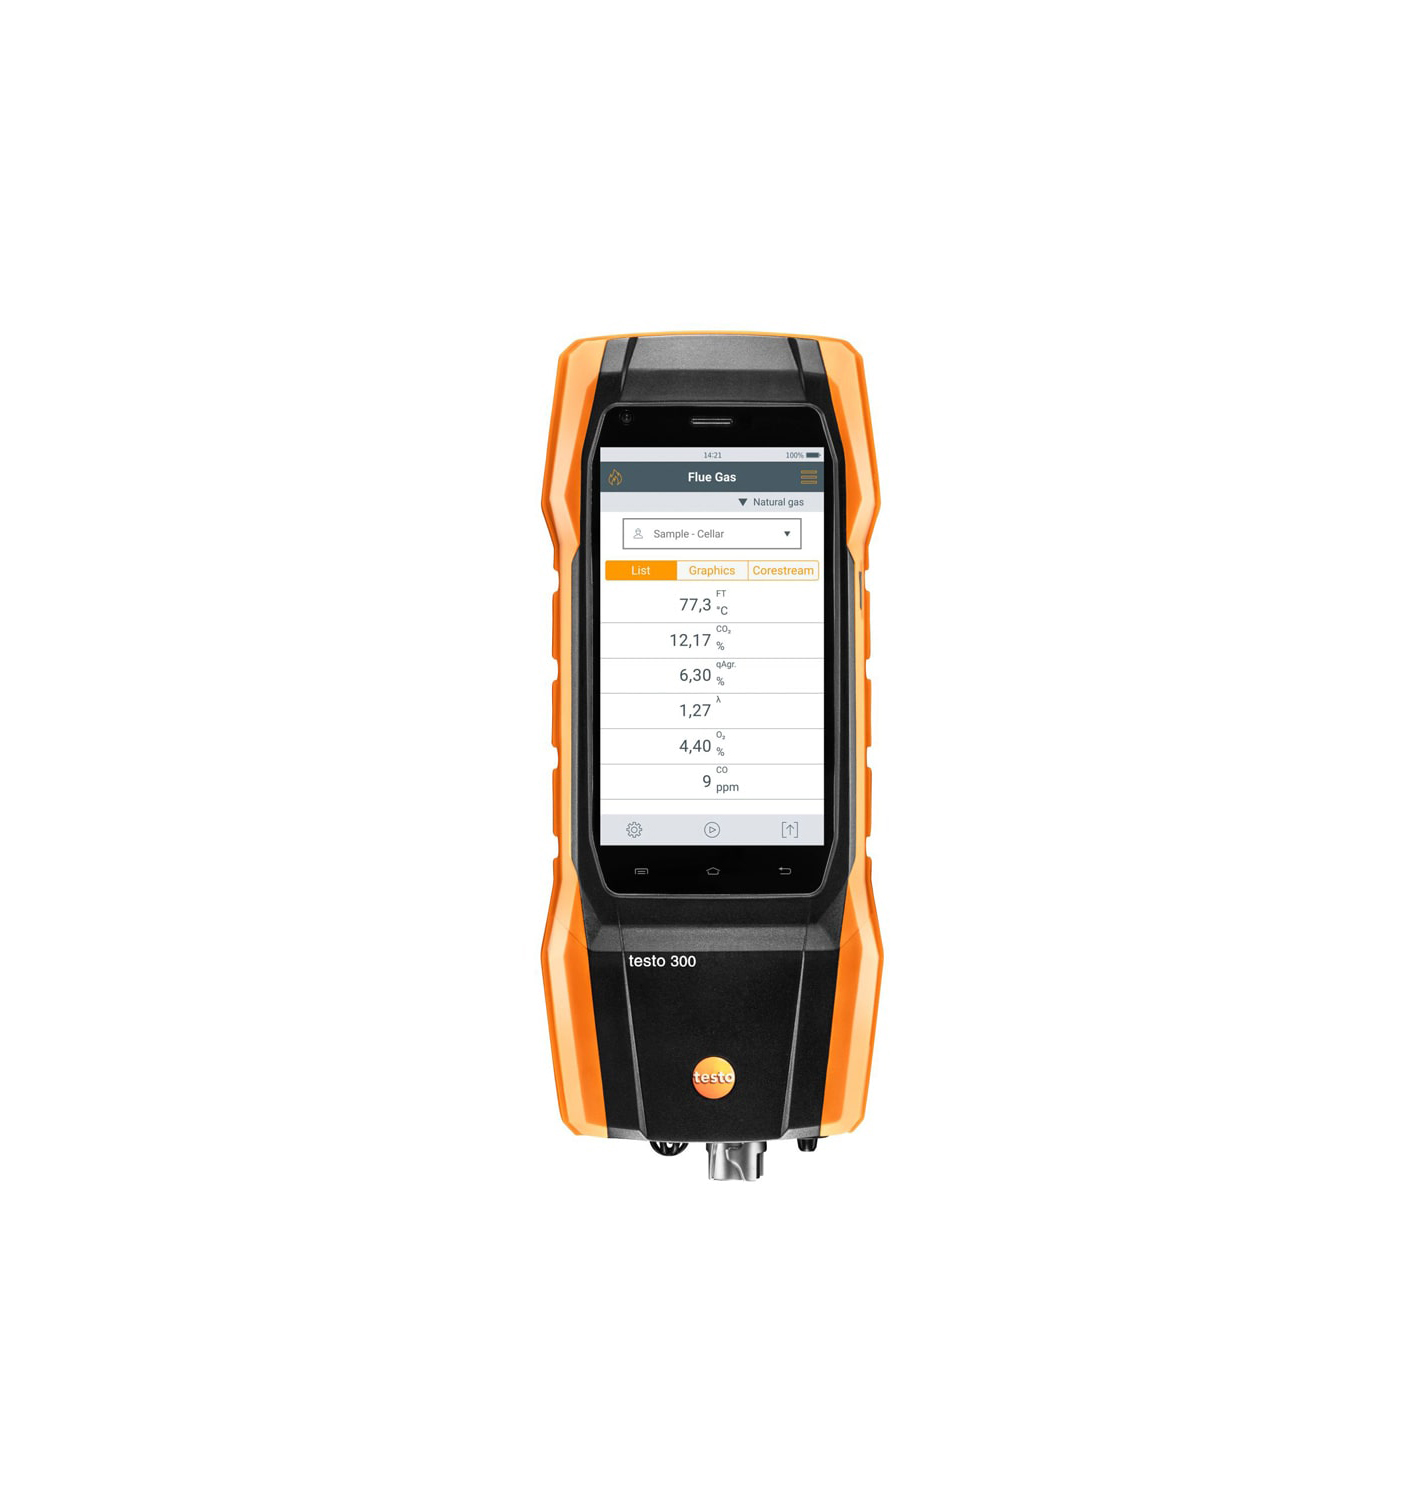 testo 300 - Flue gas analyzer (O2, CO up to 4,000 ppm)